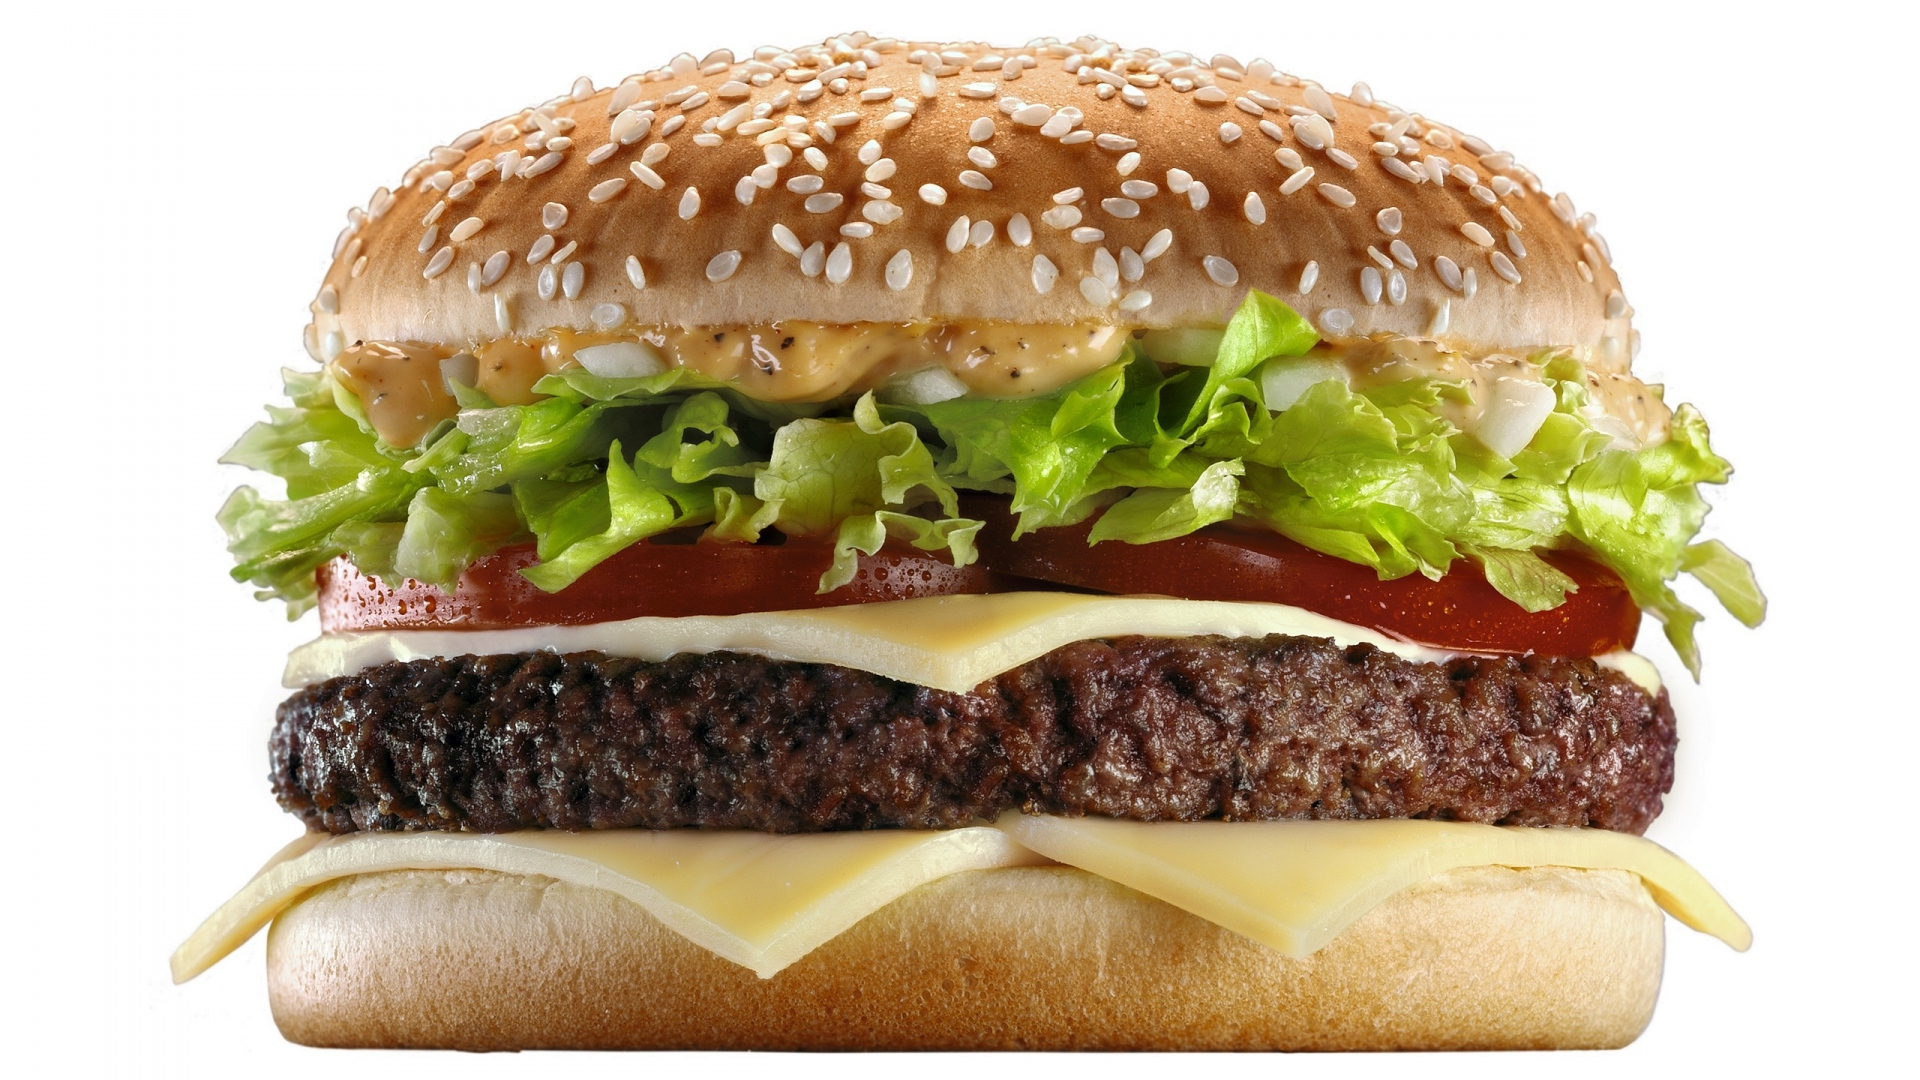 Get The Latest Cheeseburger Burger Cheese News Pictures And Videos Learn All About From Wallpapers4uorg Your Wallpaper